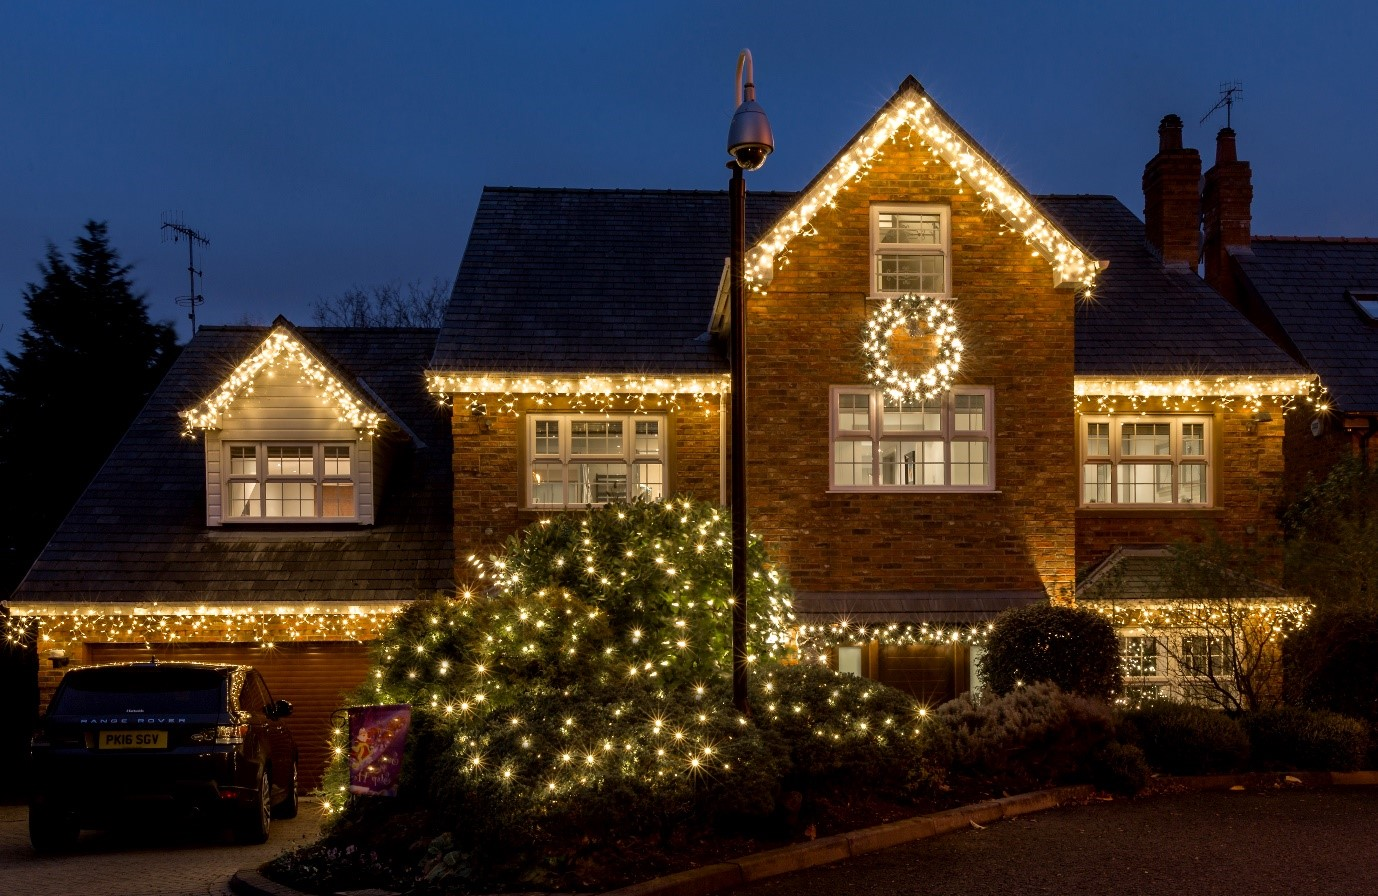 The Christmas Decorators Franchisee completion task